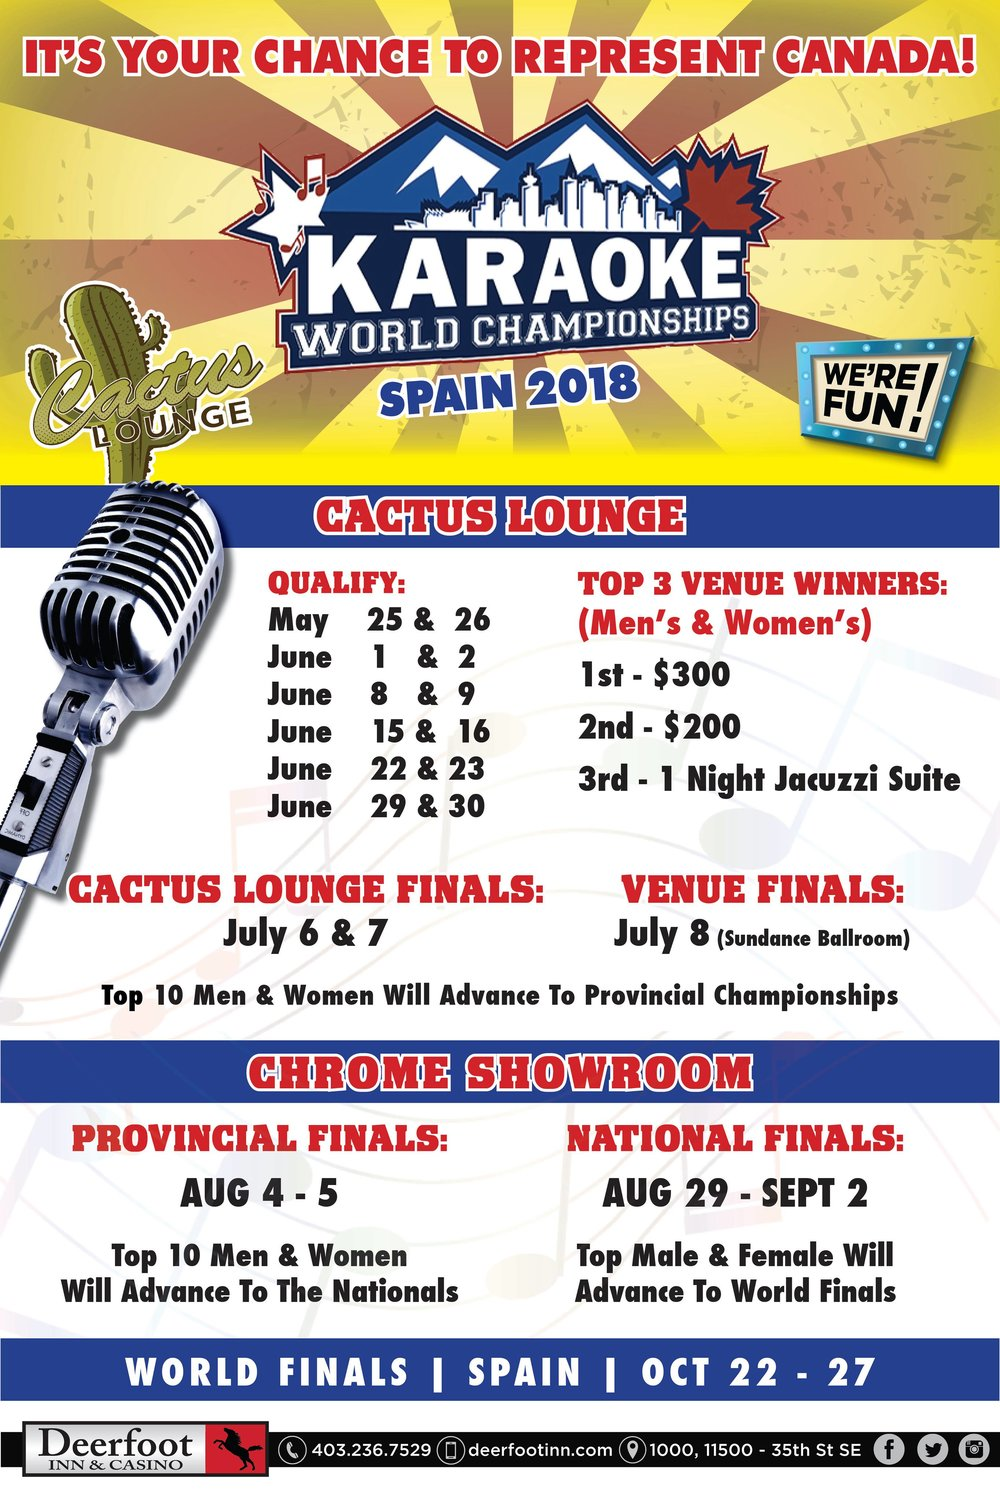 Deerfoot Inn & Casino  - 1000, 11500 - 35th Street SE, Calgary, AlbertaTwelve nights to qualify - every Friday and Saturday from May 25th to June 30th!! Check-in between 8:00 and 9:15 pm - Karaoke (for non-competitors) starts at 9:00, and competition starts at 9:30 pm.For this Venue, attend at least 2 of the 12 qualifying nights and sing 1 song each night; however, you can attend as many as you would like. When qualifying nights are complete, the top scores from 2 separate songs will be used to calculate your standing and determine if you advance to the Venue Finals. The top 30 men and 30 women who will advance to the Venue Finals will be announced on Monday, July 2nd.If you qualify for the Venue Finals, you will sing 2 songs (different from those your qualified with).  The first song will be on either Friday, July 6th or Saturday, July 7th, and everyone will sing their second song at the Venue Finale on Sunday, July 8th in the Sundance Ballroom.PROVINCIAL FINALS - will be held at Deerfoot Inn & Casino in the Chrome Showroom on August 4th & 5th.  To book a room at the special rate reserved for competitors (and their friends and family), use promo code KARAOKE3.Tickets are on sale for the Sunday Finale (doors open at 6:15 pm and the show begins at 7:00 - https://www.ticketor.com/kwccanada/events $10.00 in advance (until 6:00 pm August 5) & $15.00 at the doorHosted by:  KISS Productions